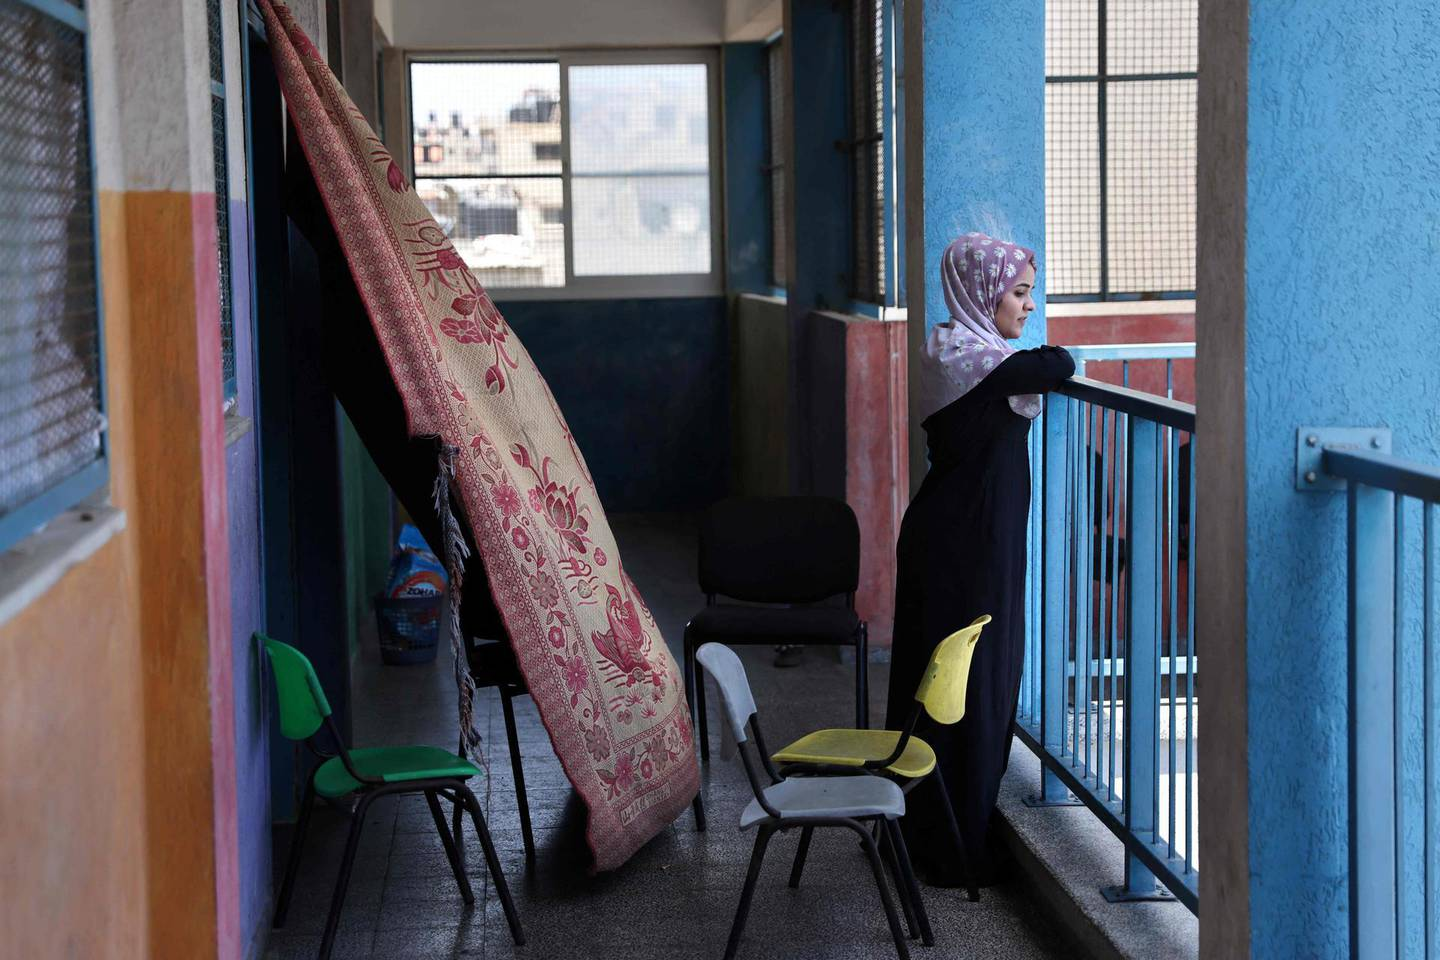 A member from the Abu Ghadyan Palestinian family is pictured on the balcony of a school run by the United Nations Relief and Works Agency for Palestine Refugees (UNRWA) where she will be living temporarily with her relatives, after their home was damaged during the recent Israeli bombing in Gaza City, on May 29, 2021, more than a week after a ceasefire brought an end to 11 days of hostilities between Israel and Hamas.  / AFP / THOMAS COEX